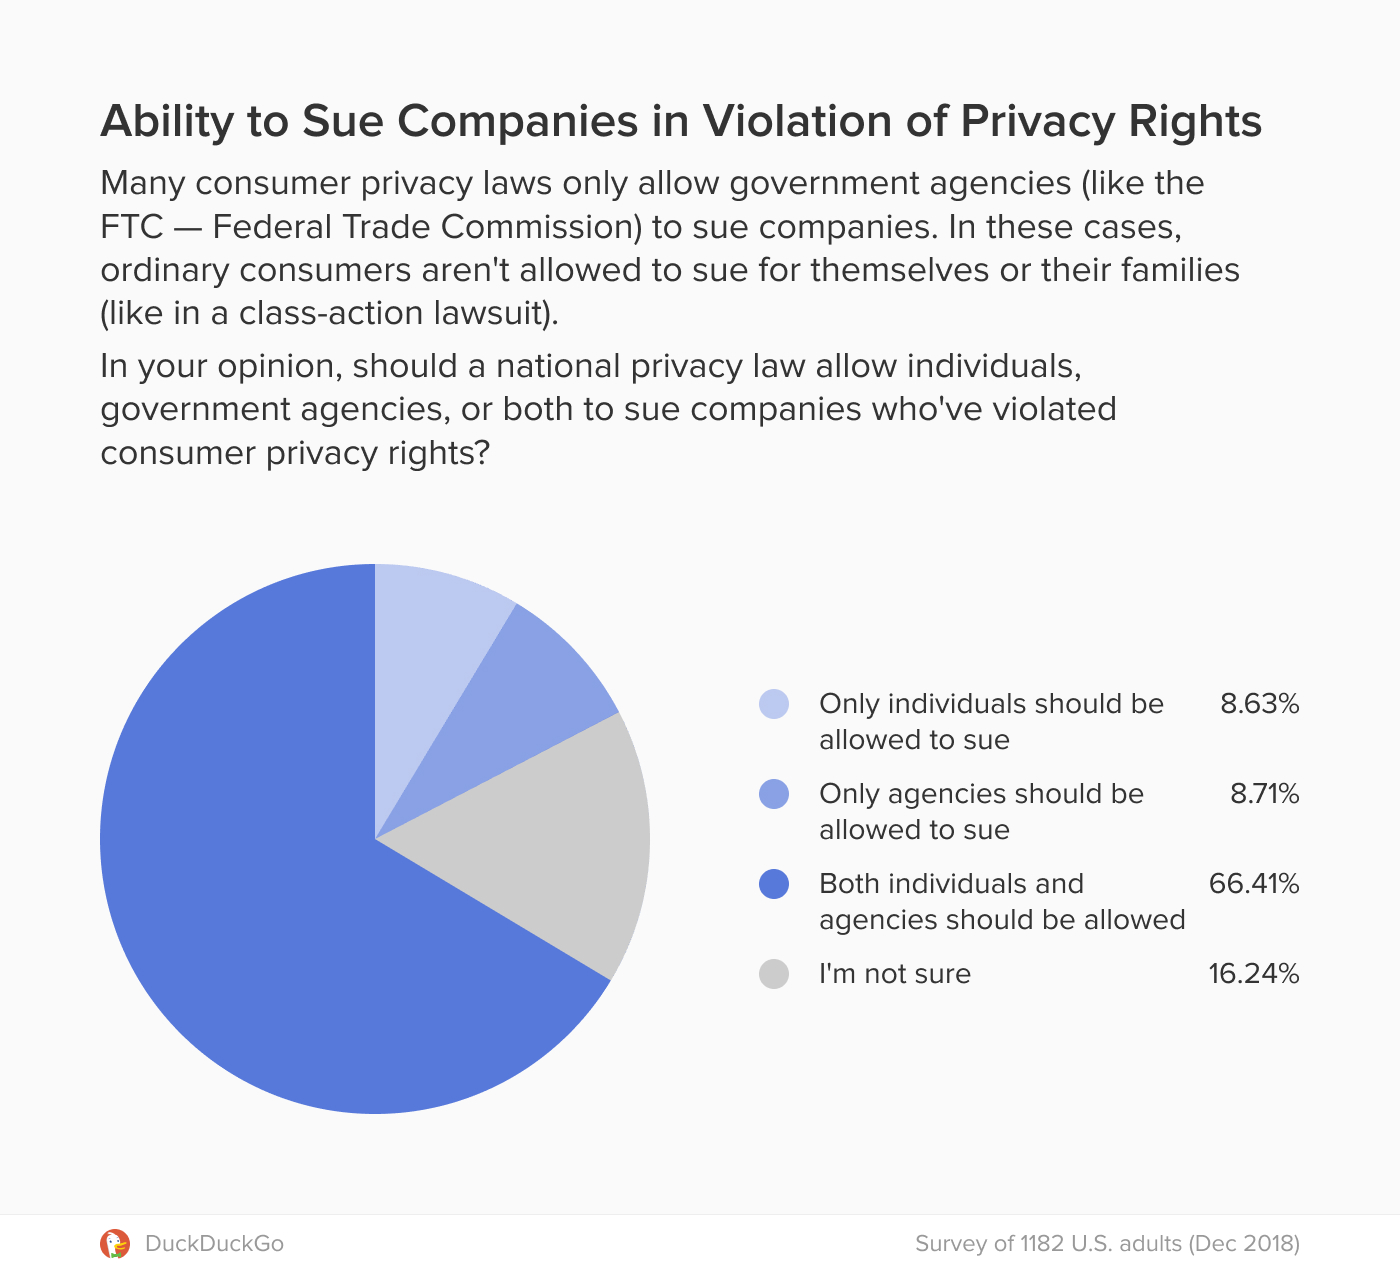 Chart showing support for the right to sue companies violating consumer privacy rights.